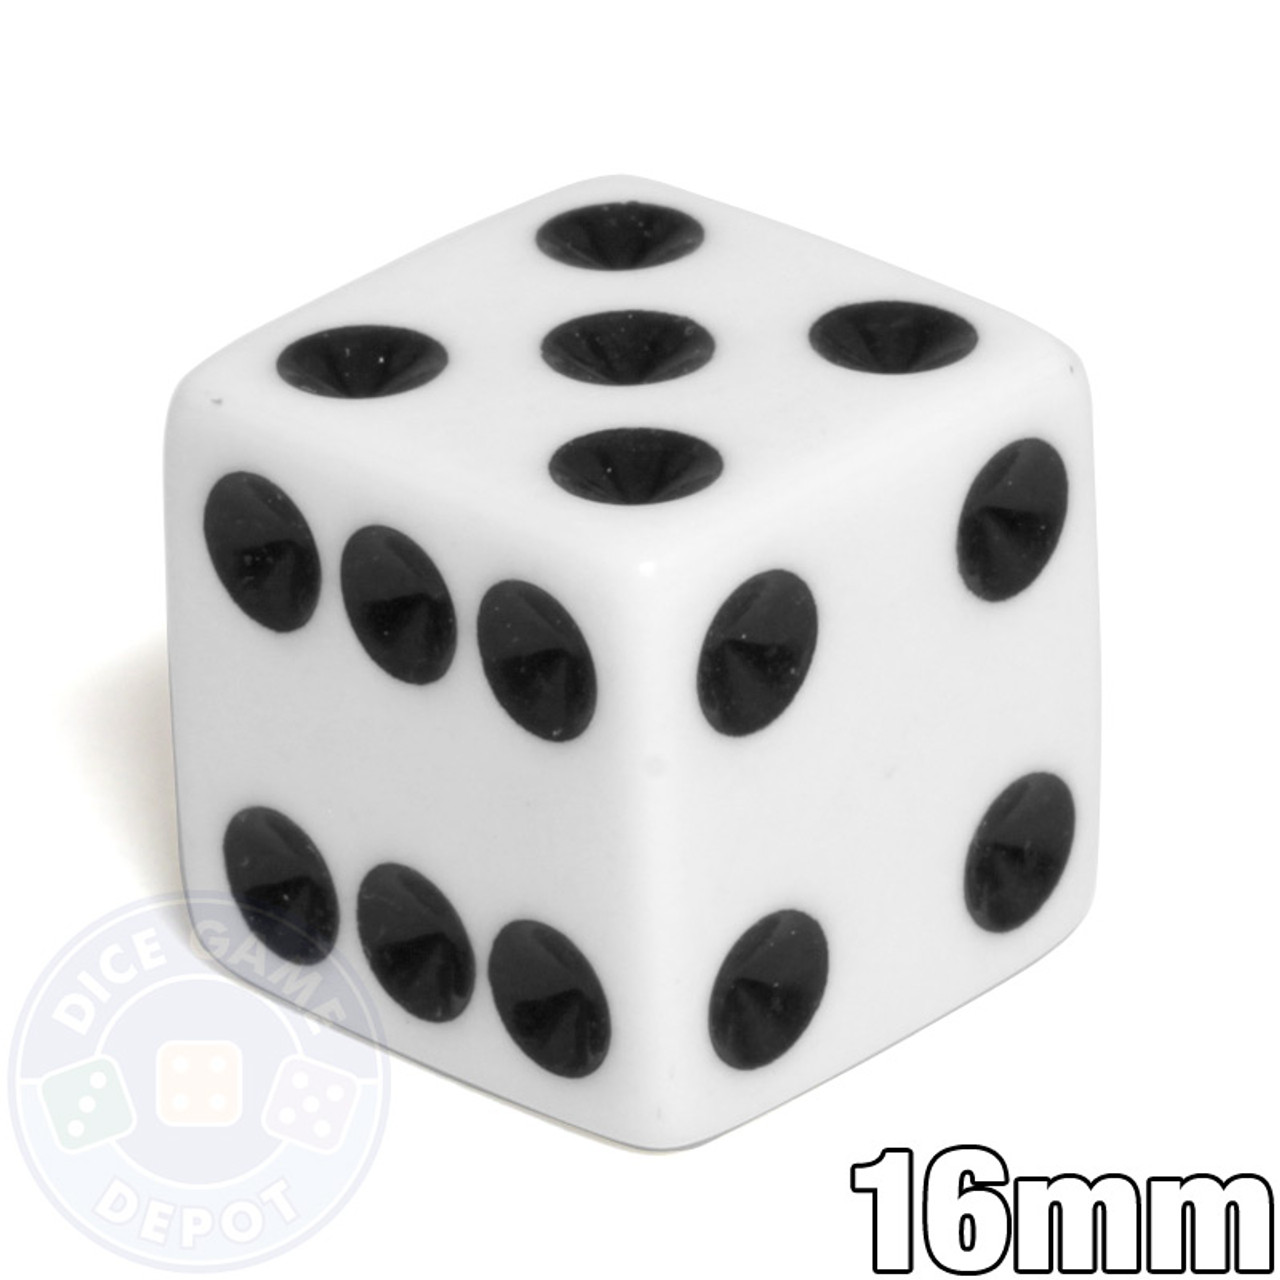 Dice /& Games Opaque 10 x 16mm D6 White with Black D/&D RPG